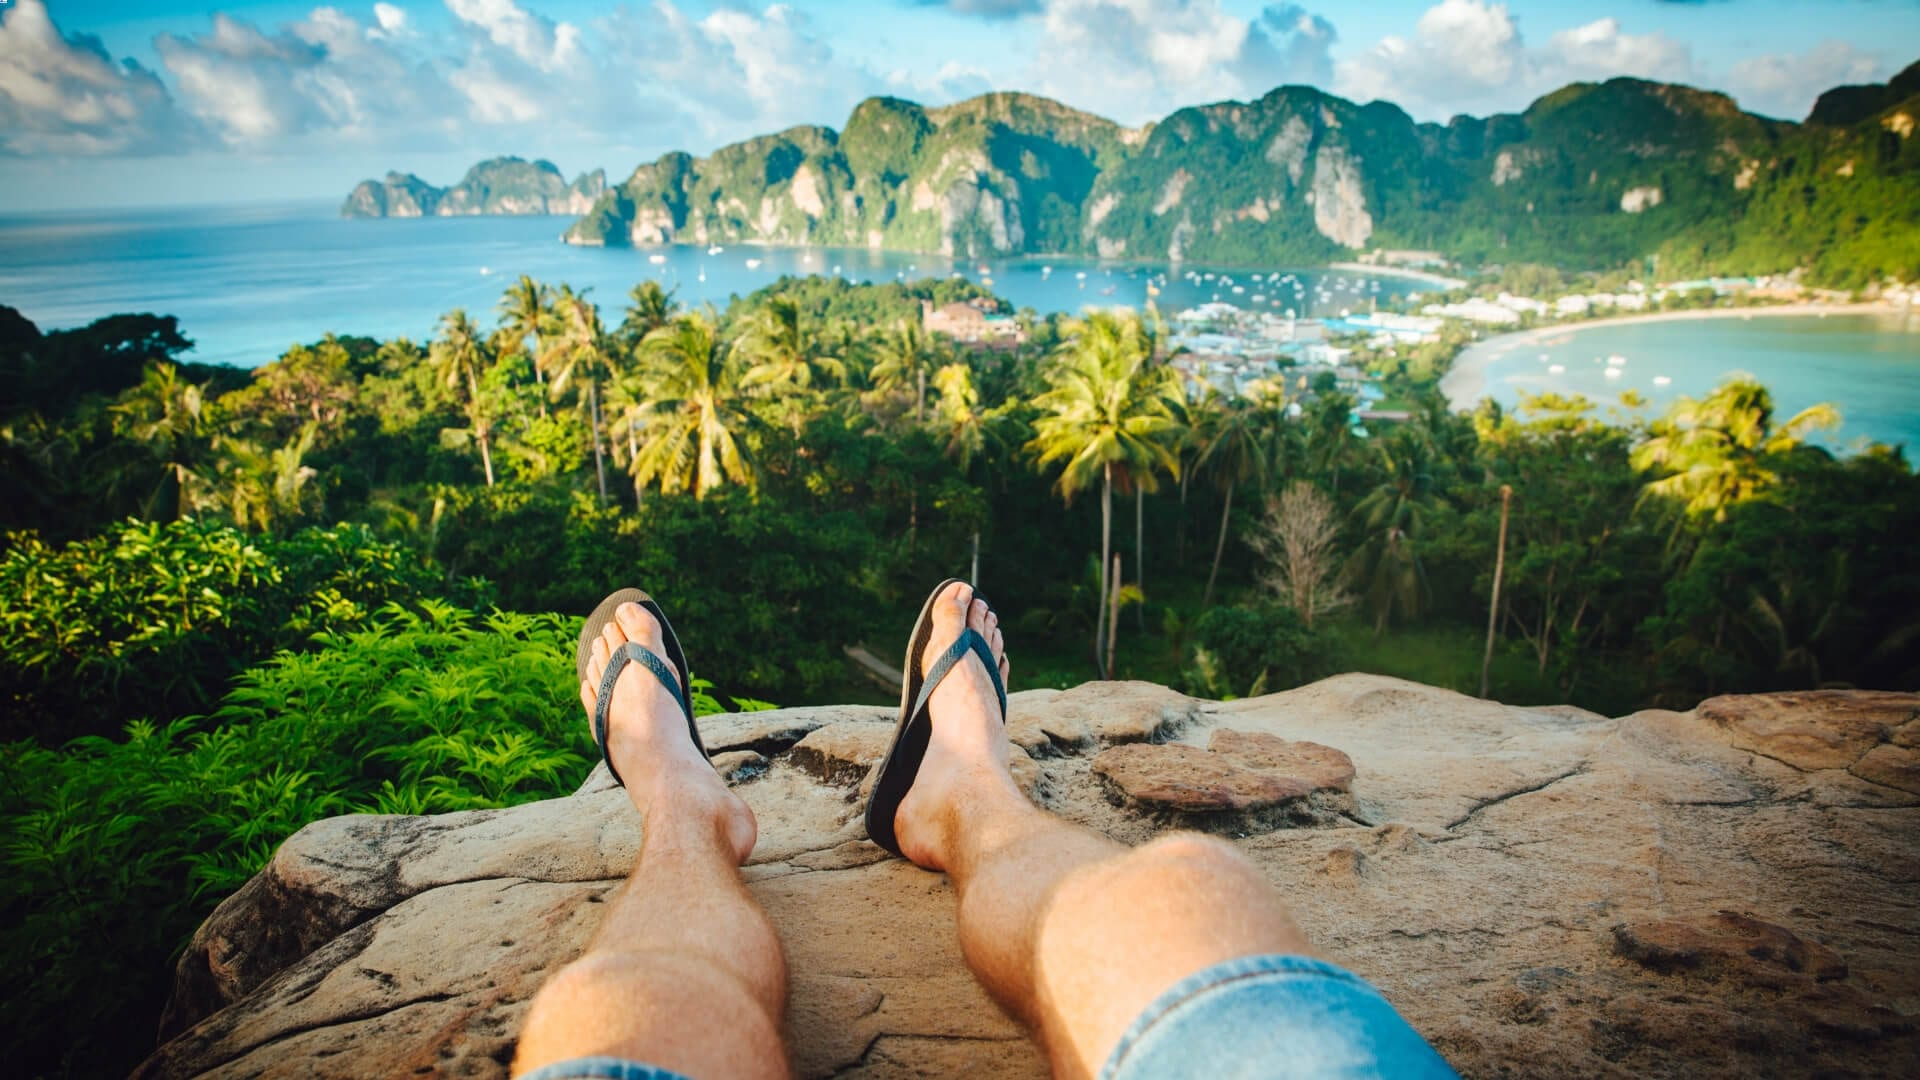 A person is laying on a rock in front of palm trees and a sea in Thailand.